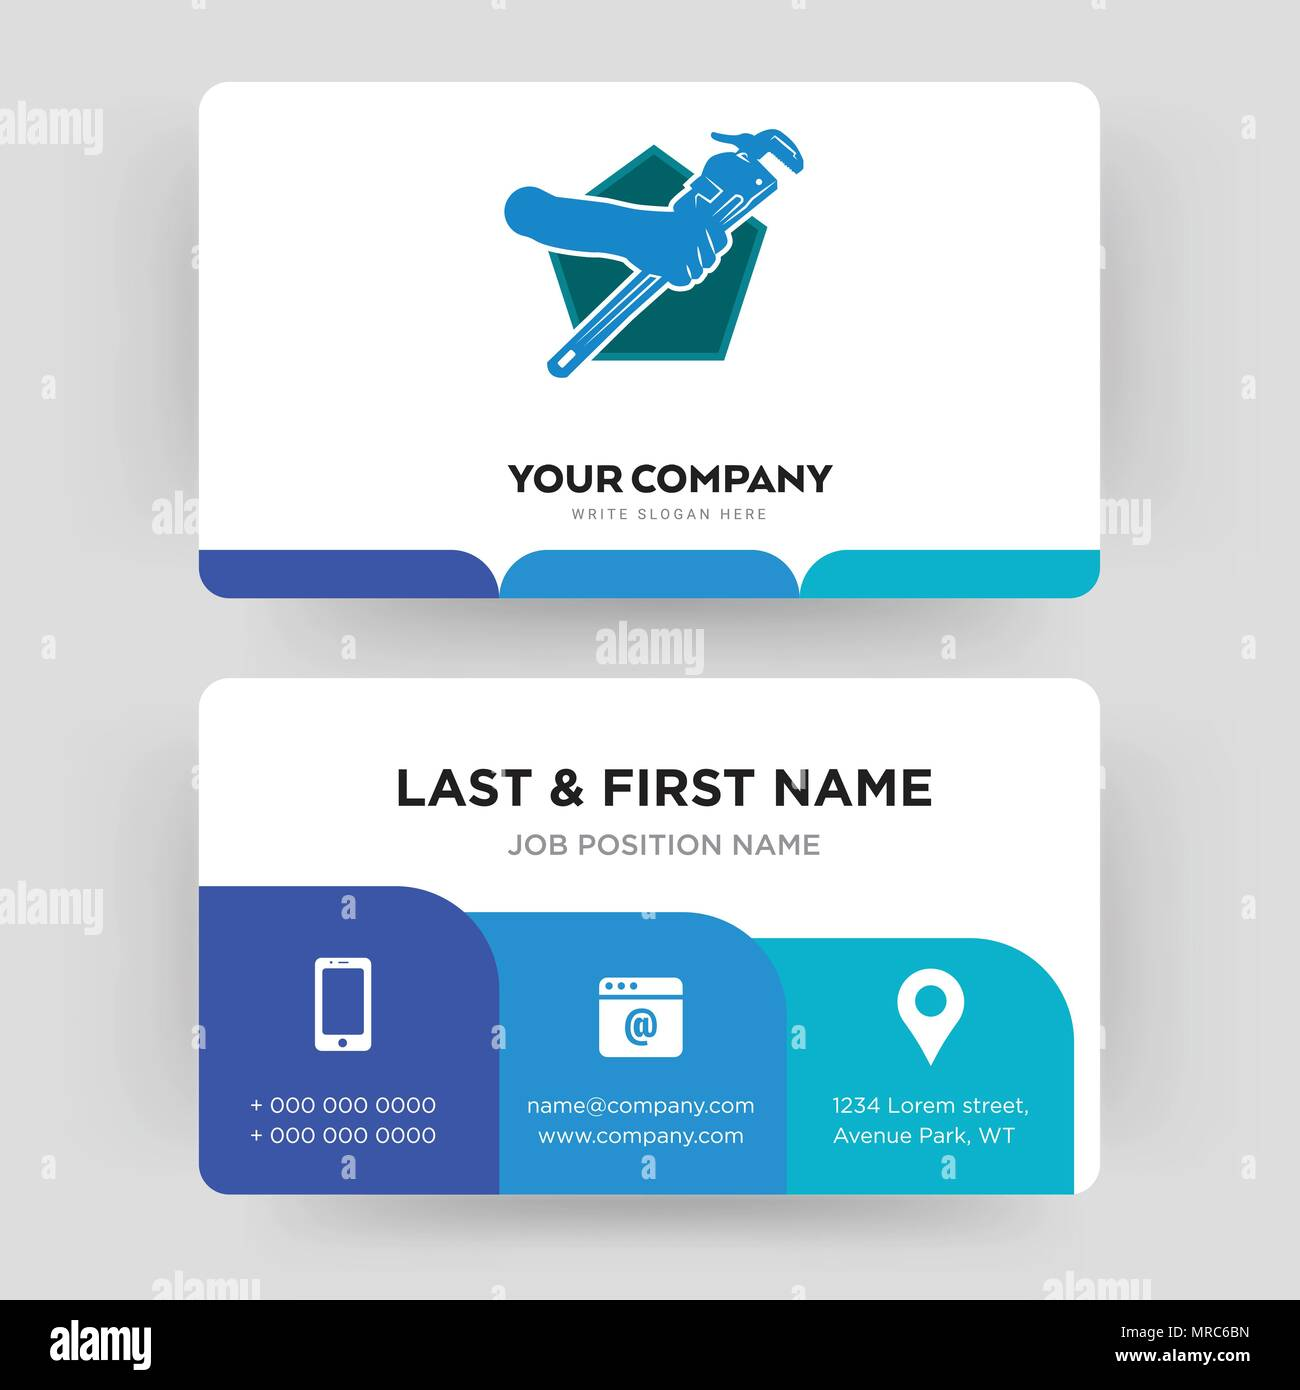 Plumber business card design template visiting for your company plumber business card design template visiting for your company modern creative and clean identity card vector colourmoves